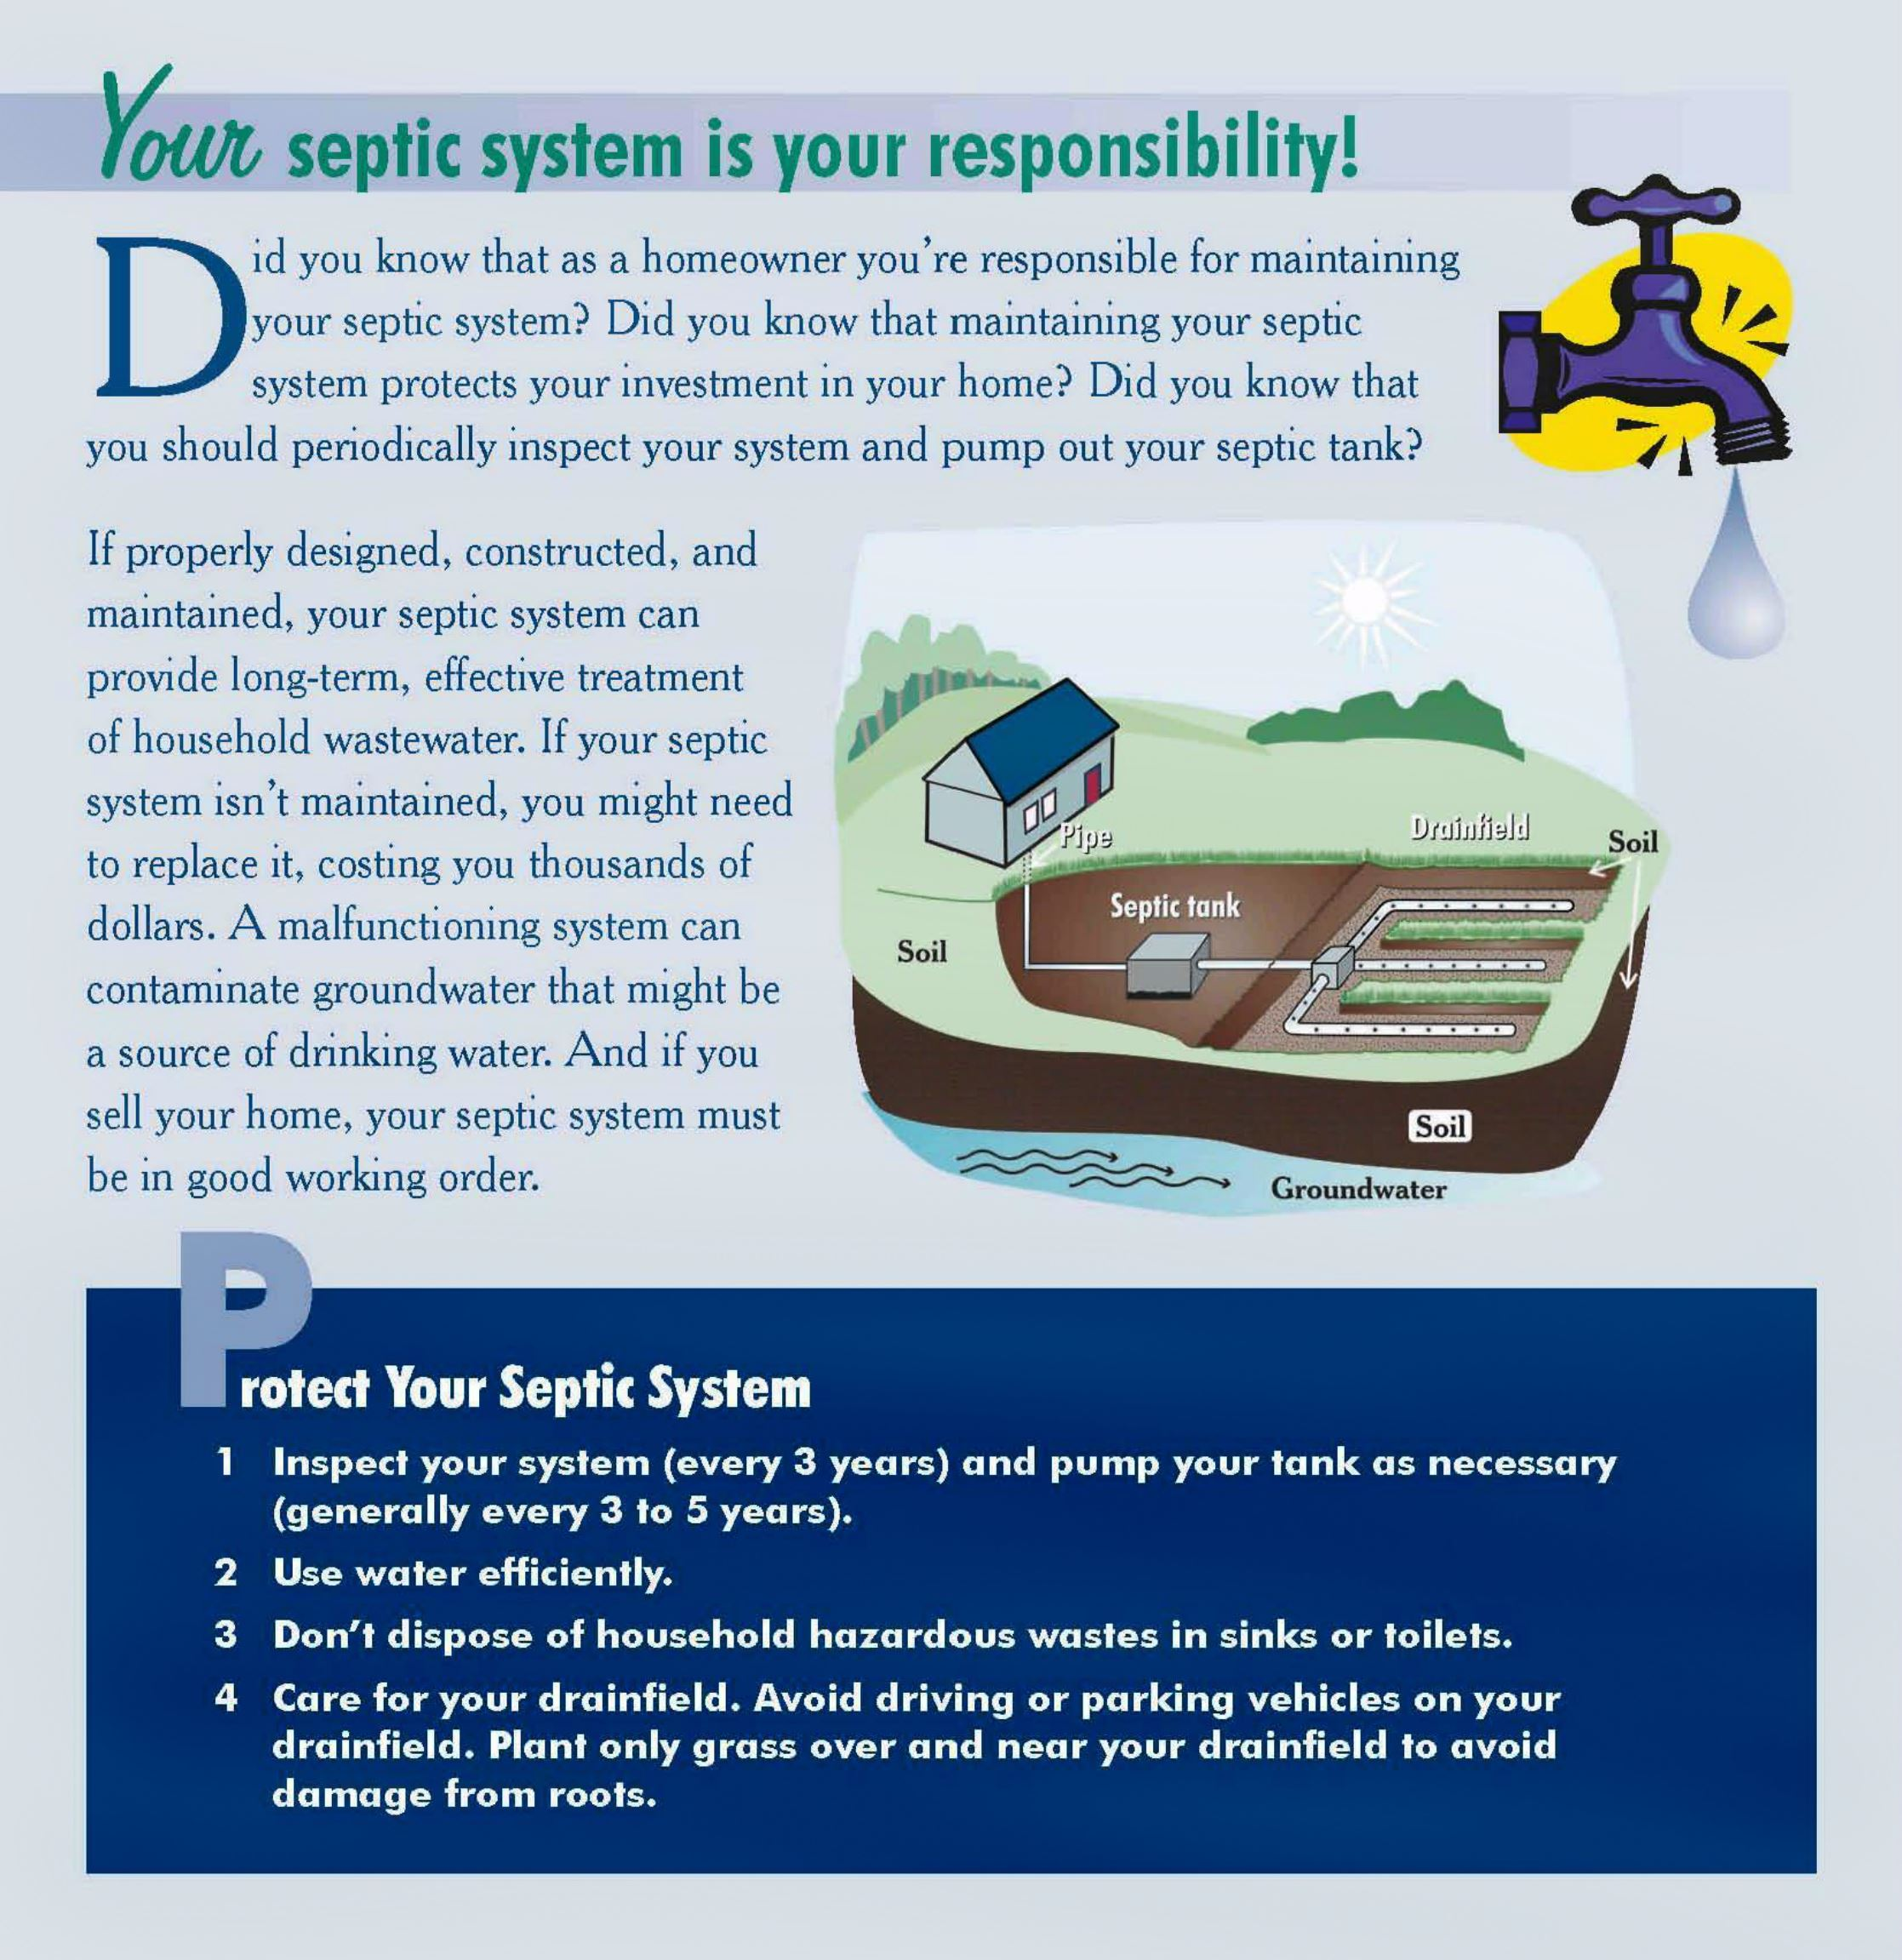 document management solutions frederick md